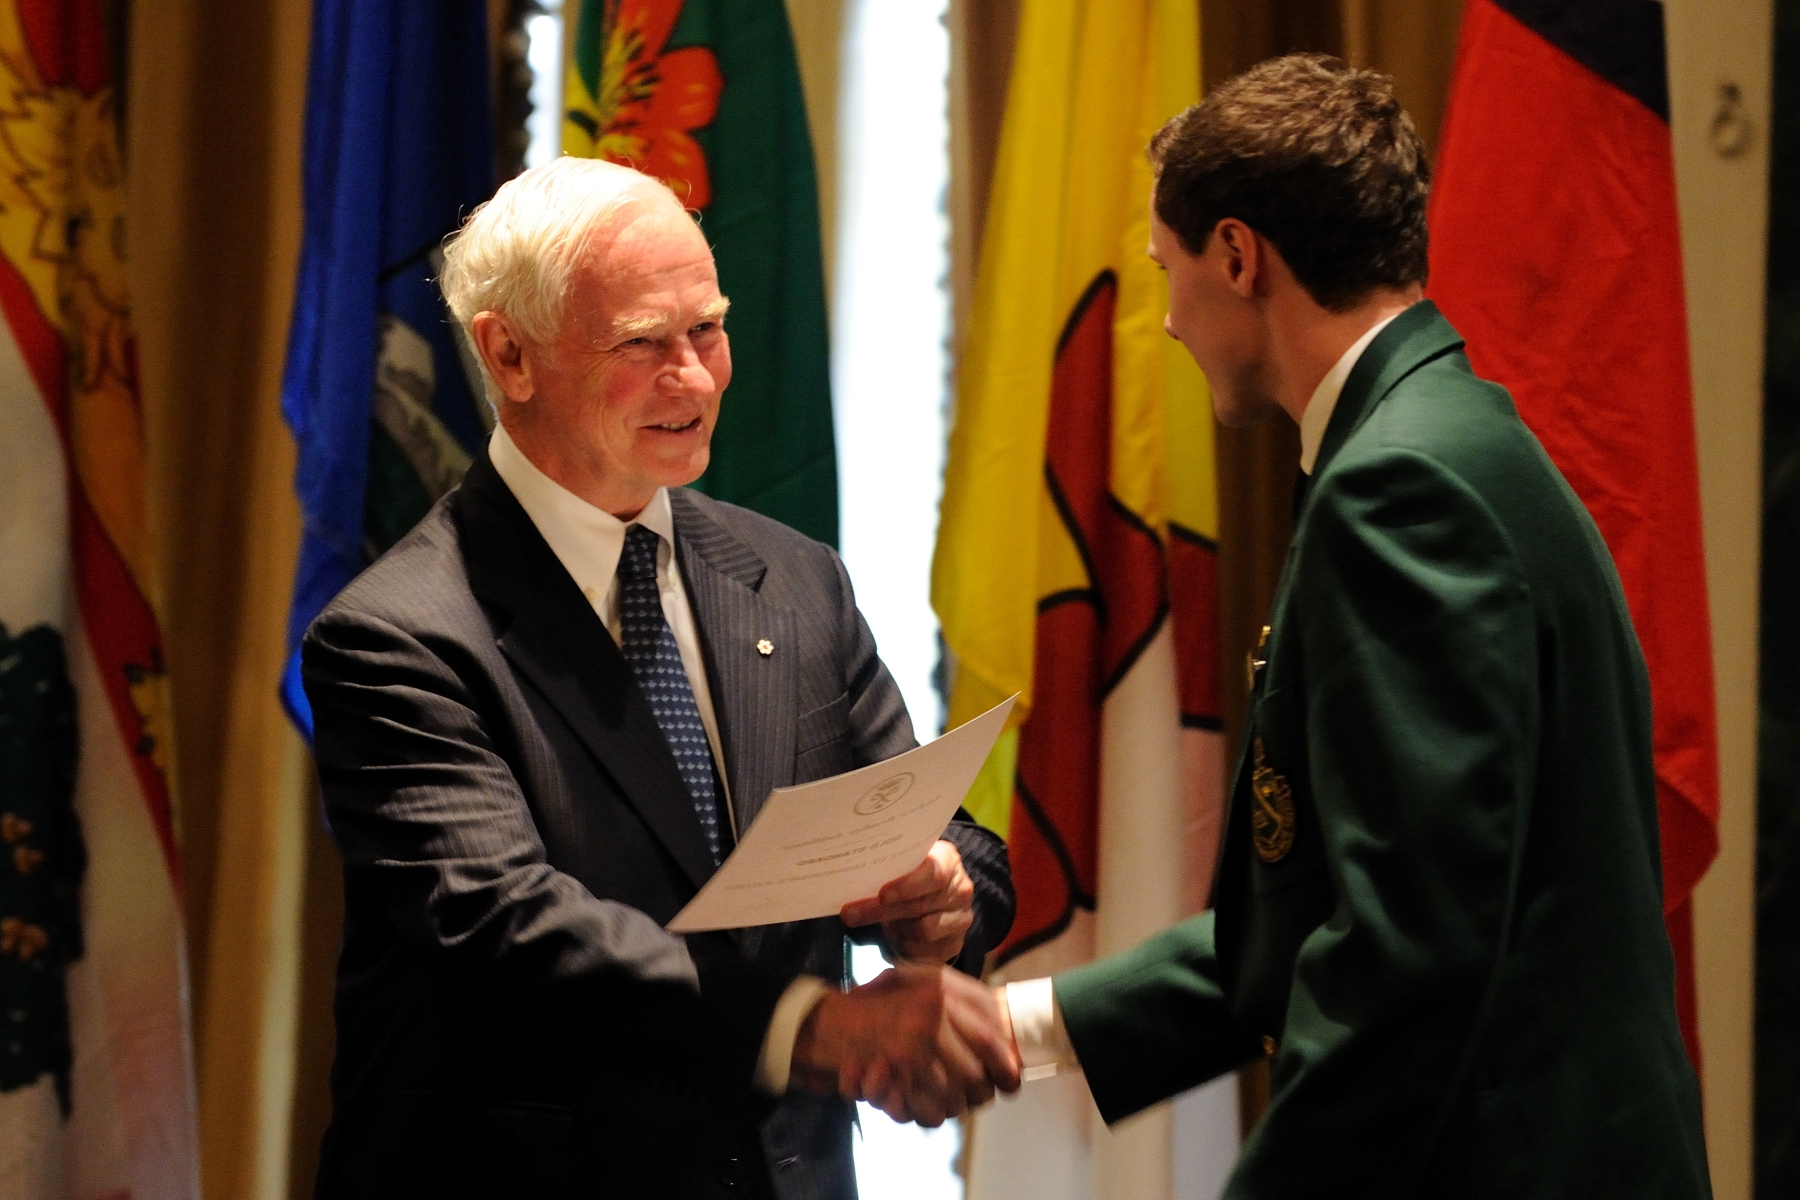 During the visit, the Governor General took the opportunity to present the Duke of Edinburgh Gold Award to approximately 80 youth.